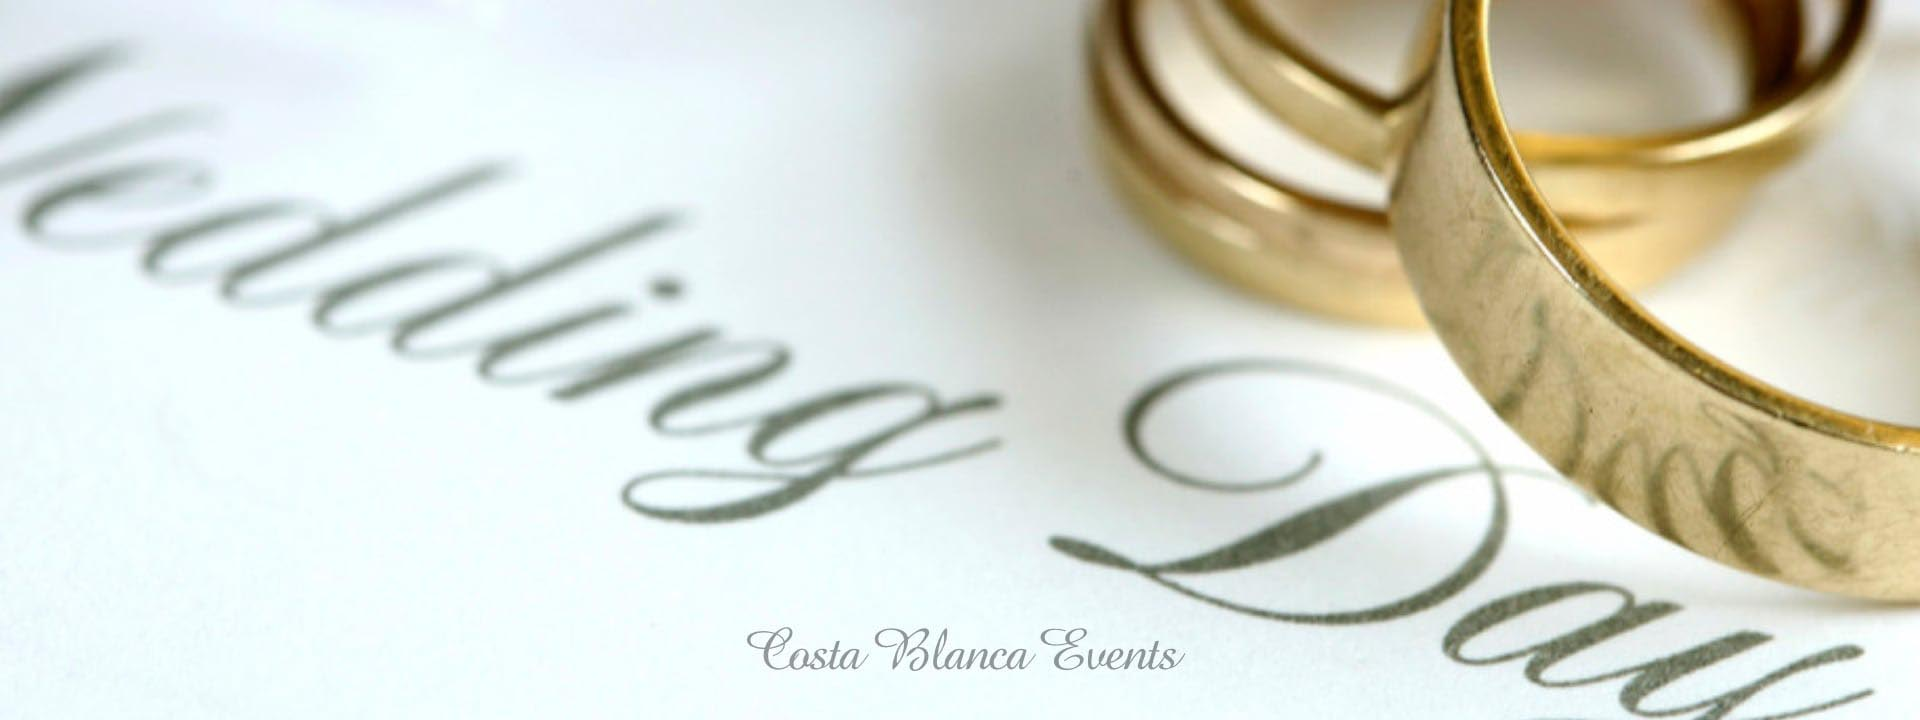 How to get married in Spain - destination wedding timeline